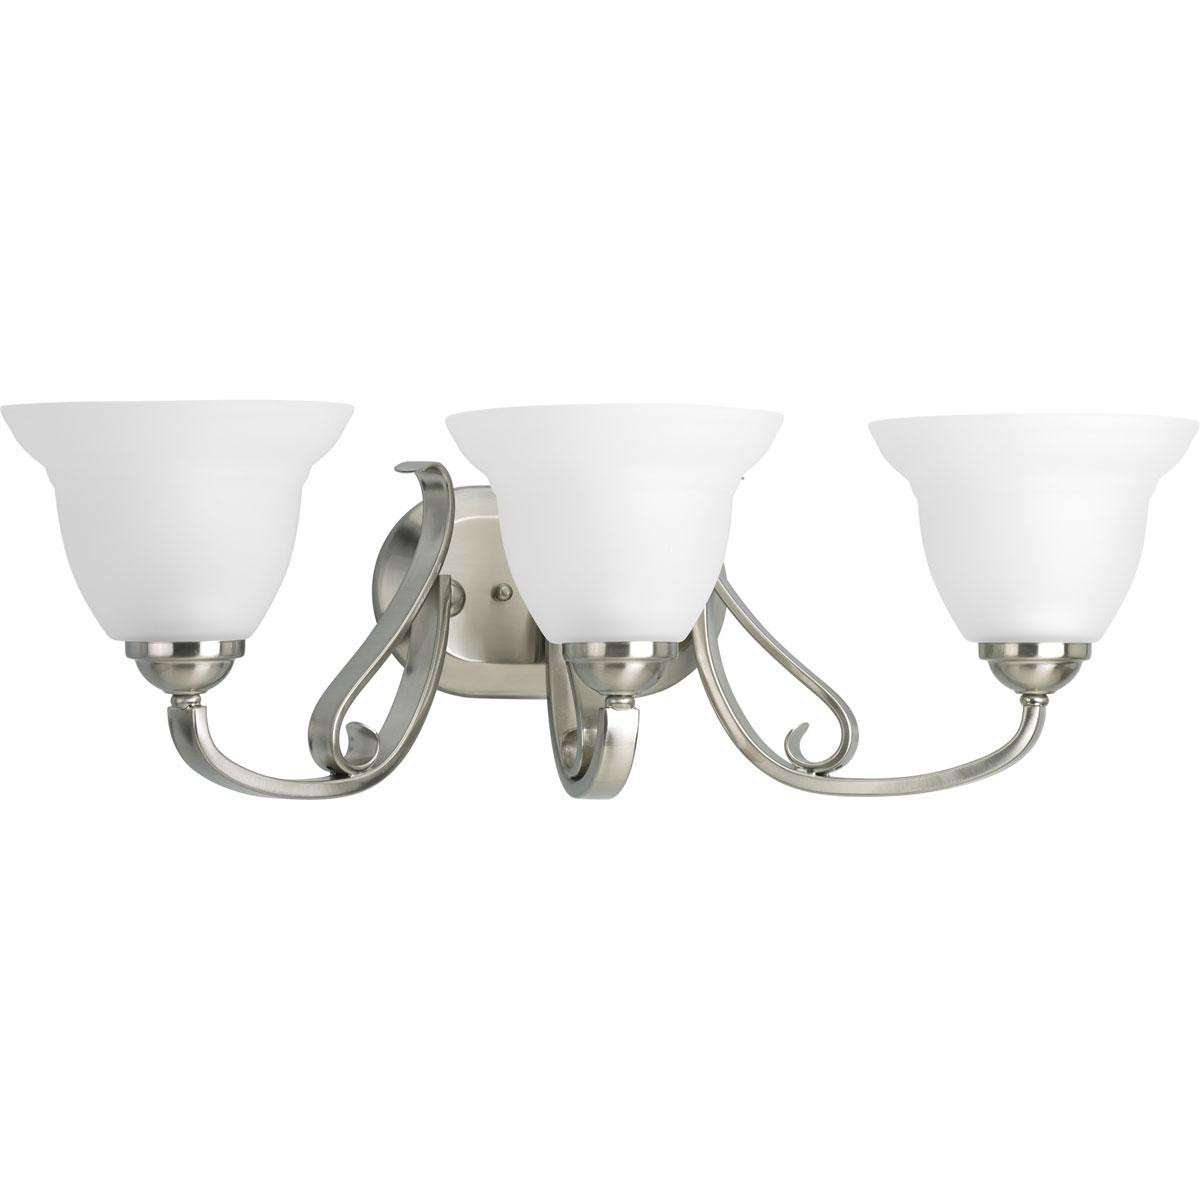 Progress P2883-09 Three-light bath bracket in Brushed Nickel finish with etched white glass.